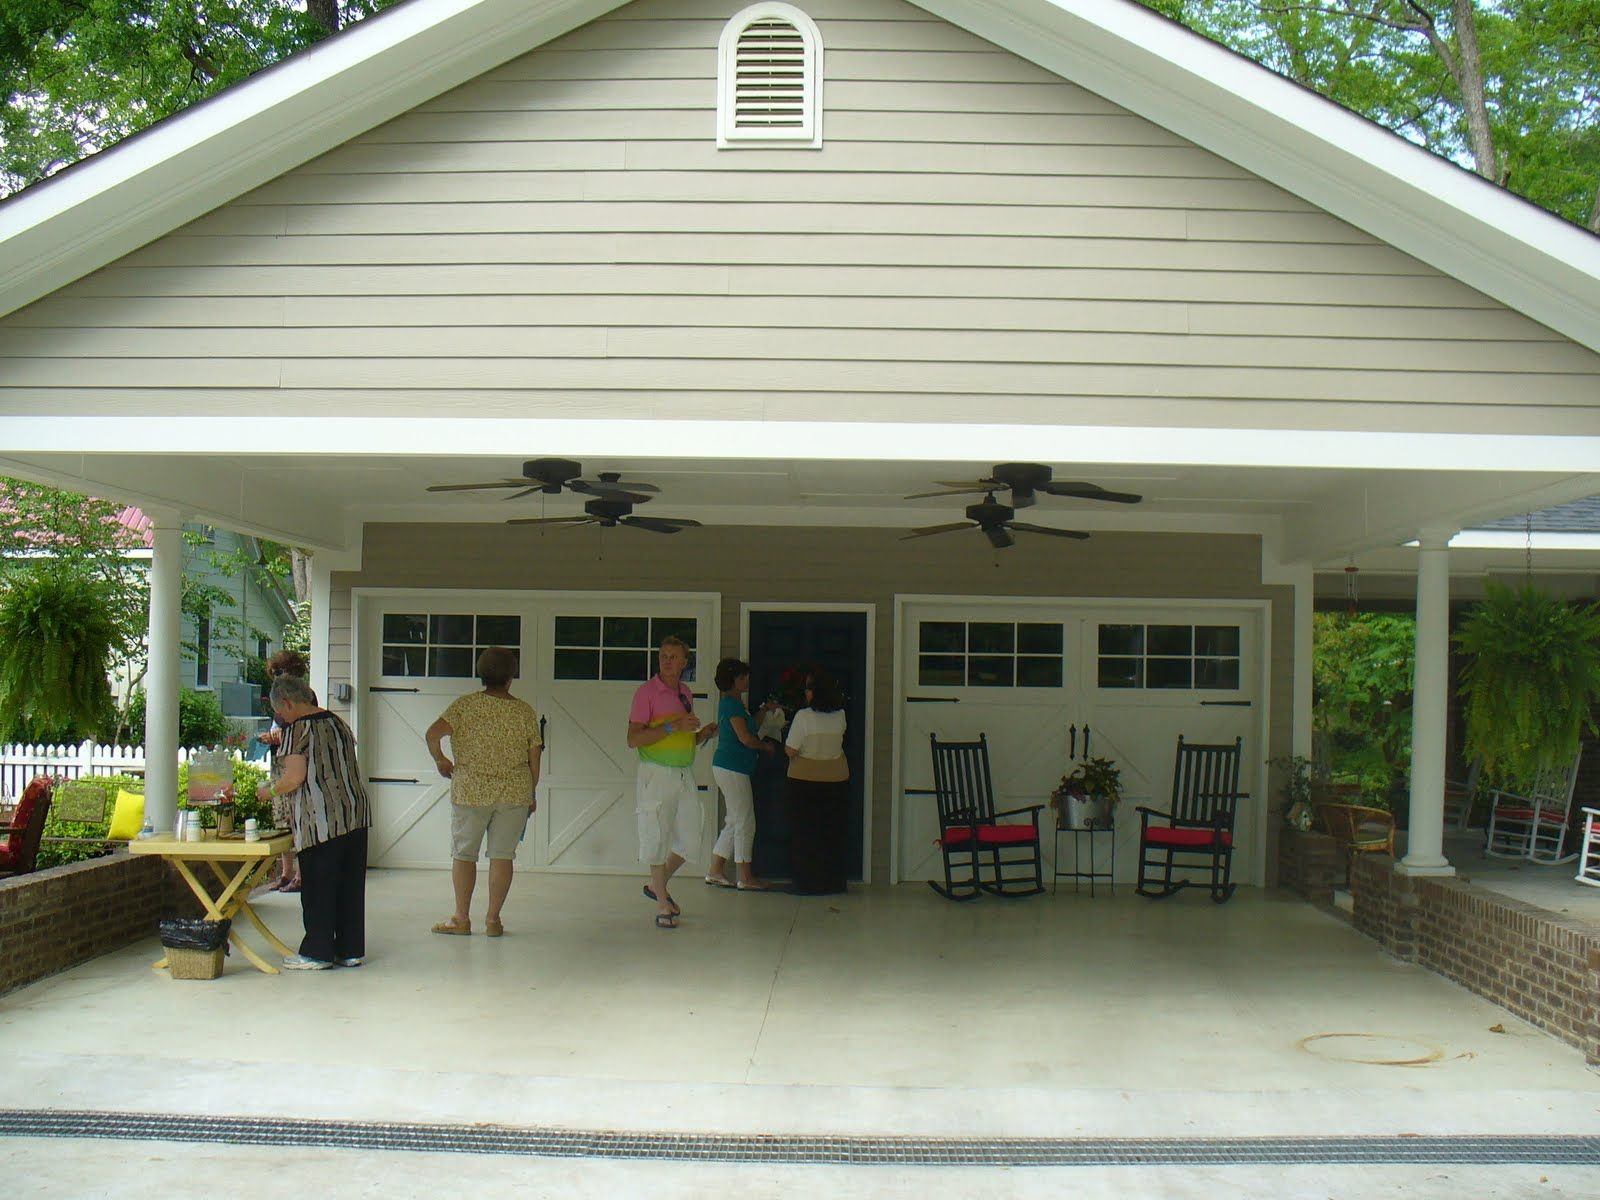 18 Best Detached Garage Plans, Ideas, Remodel And Photos